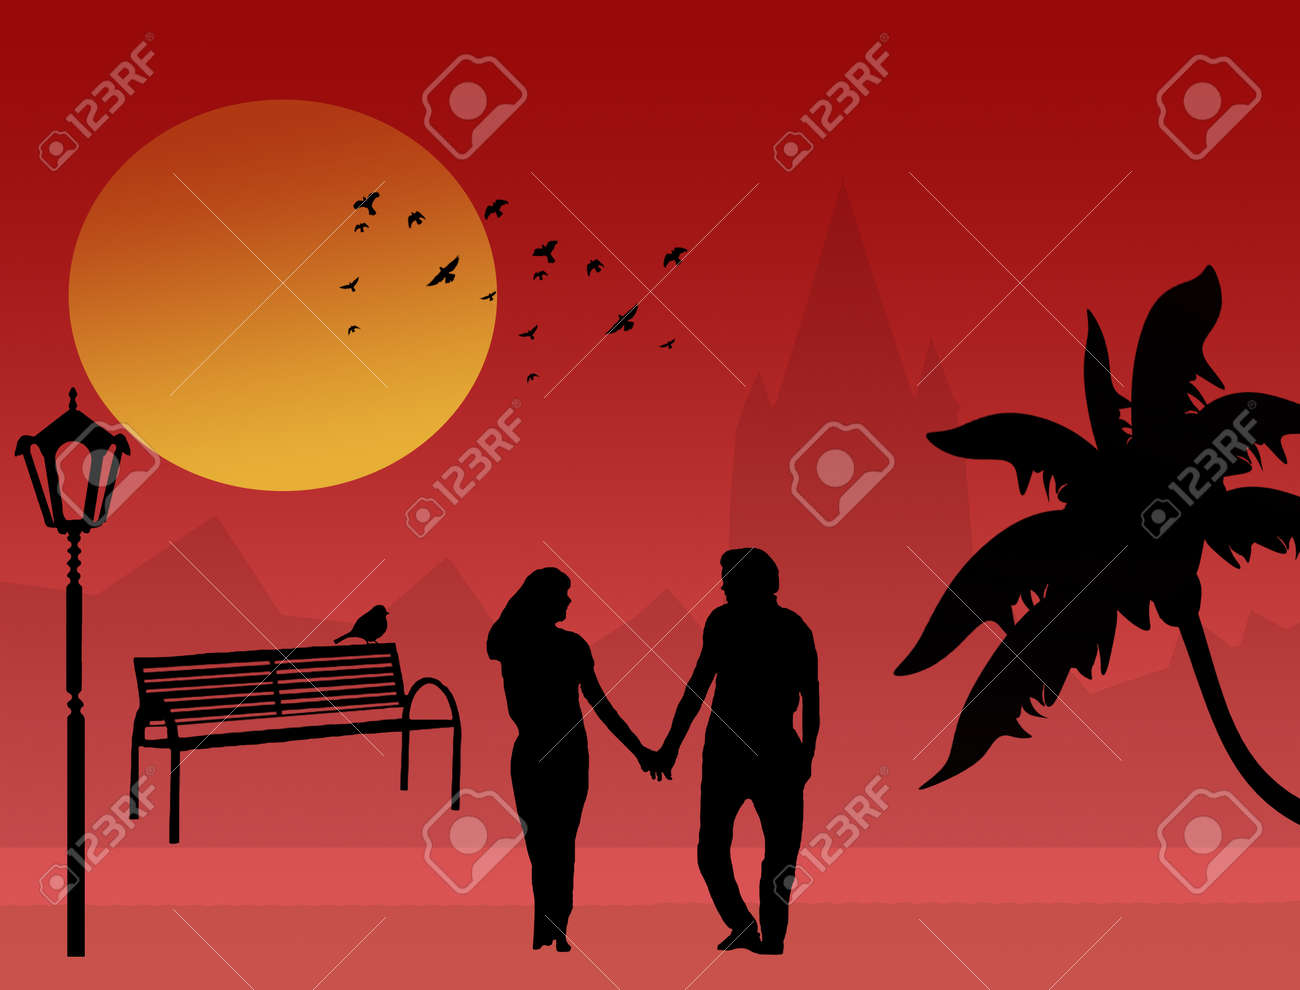 Couple in a city park at tropical sunset, vector illustration Stock Vector - 11881359